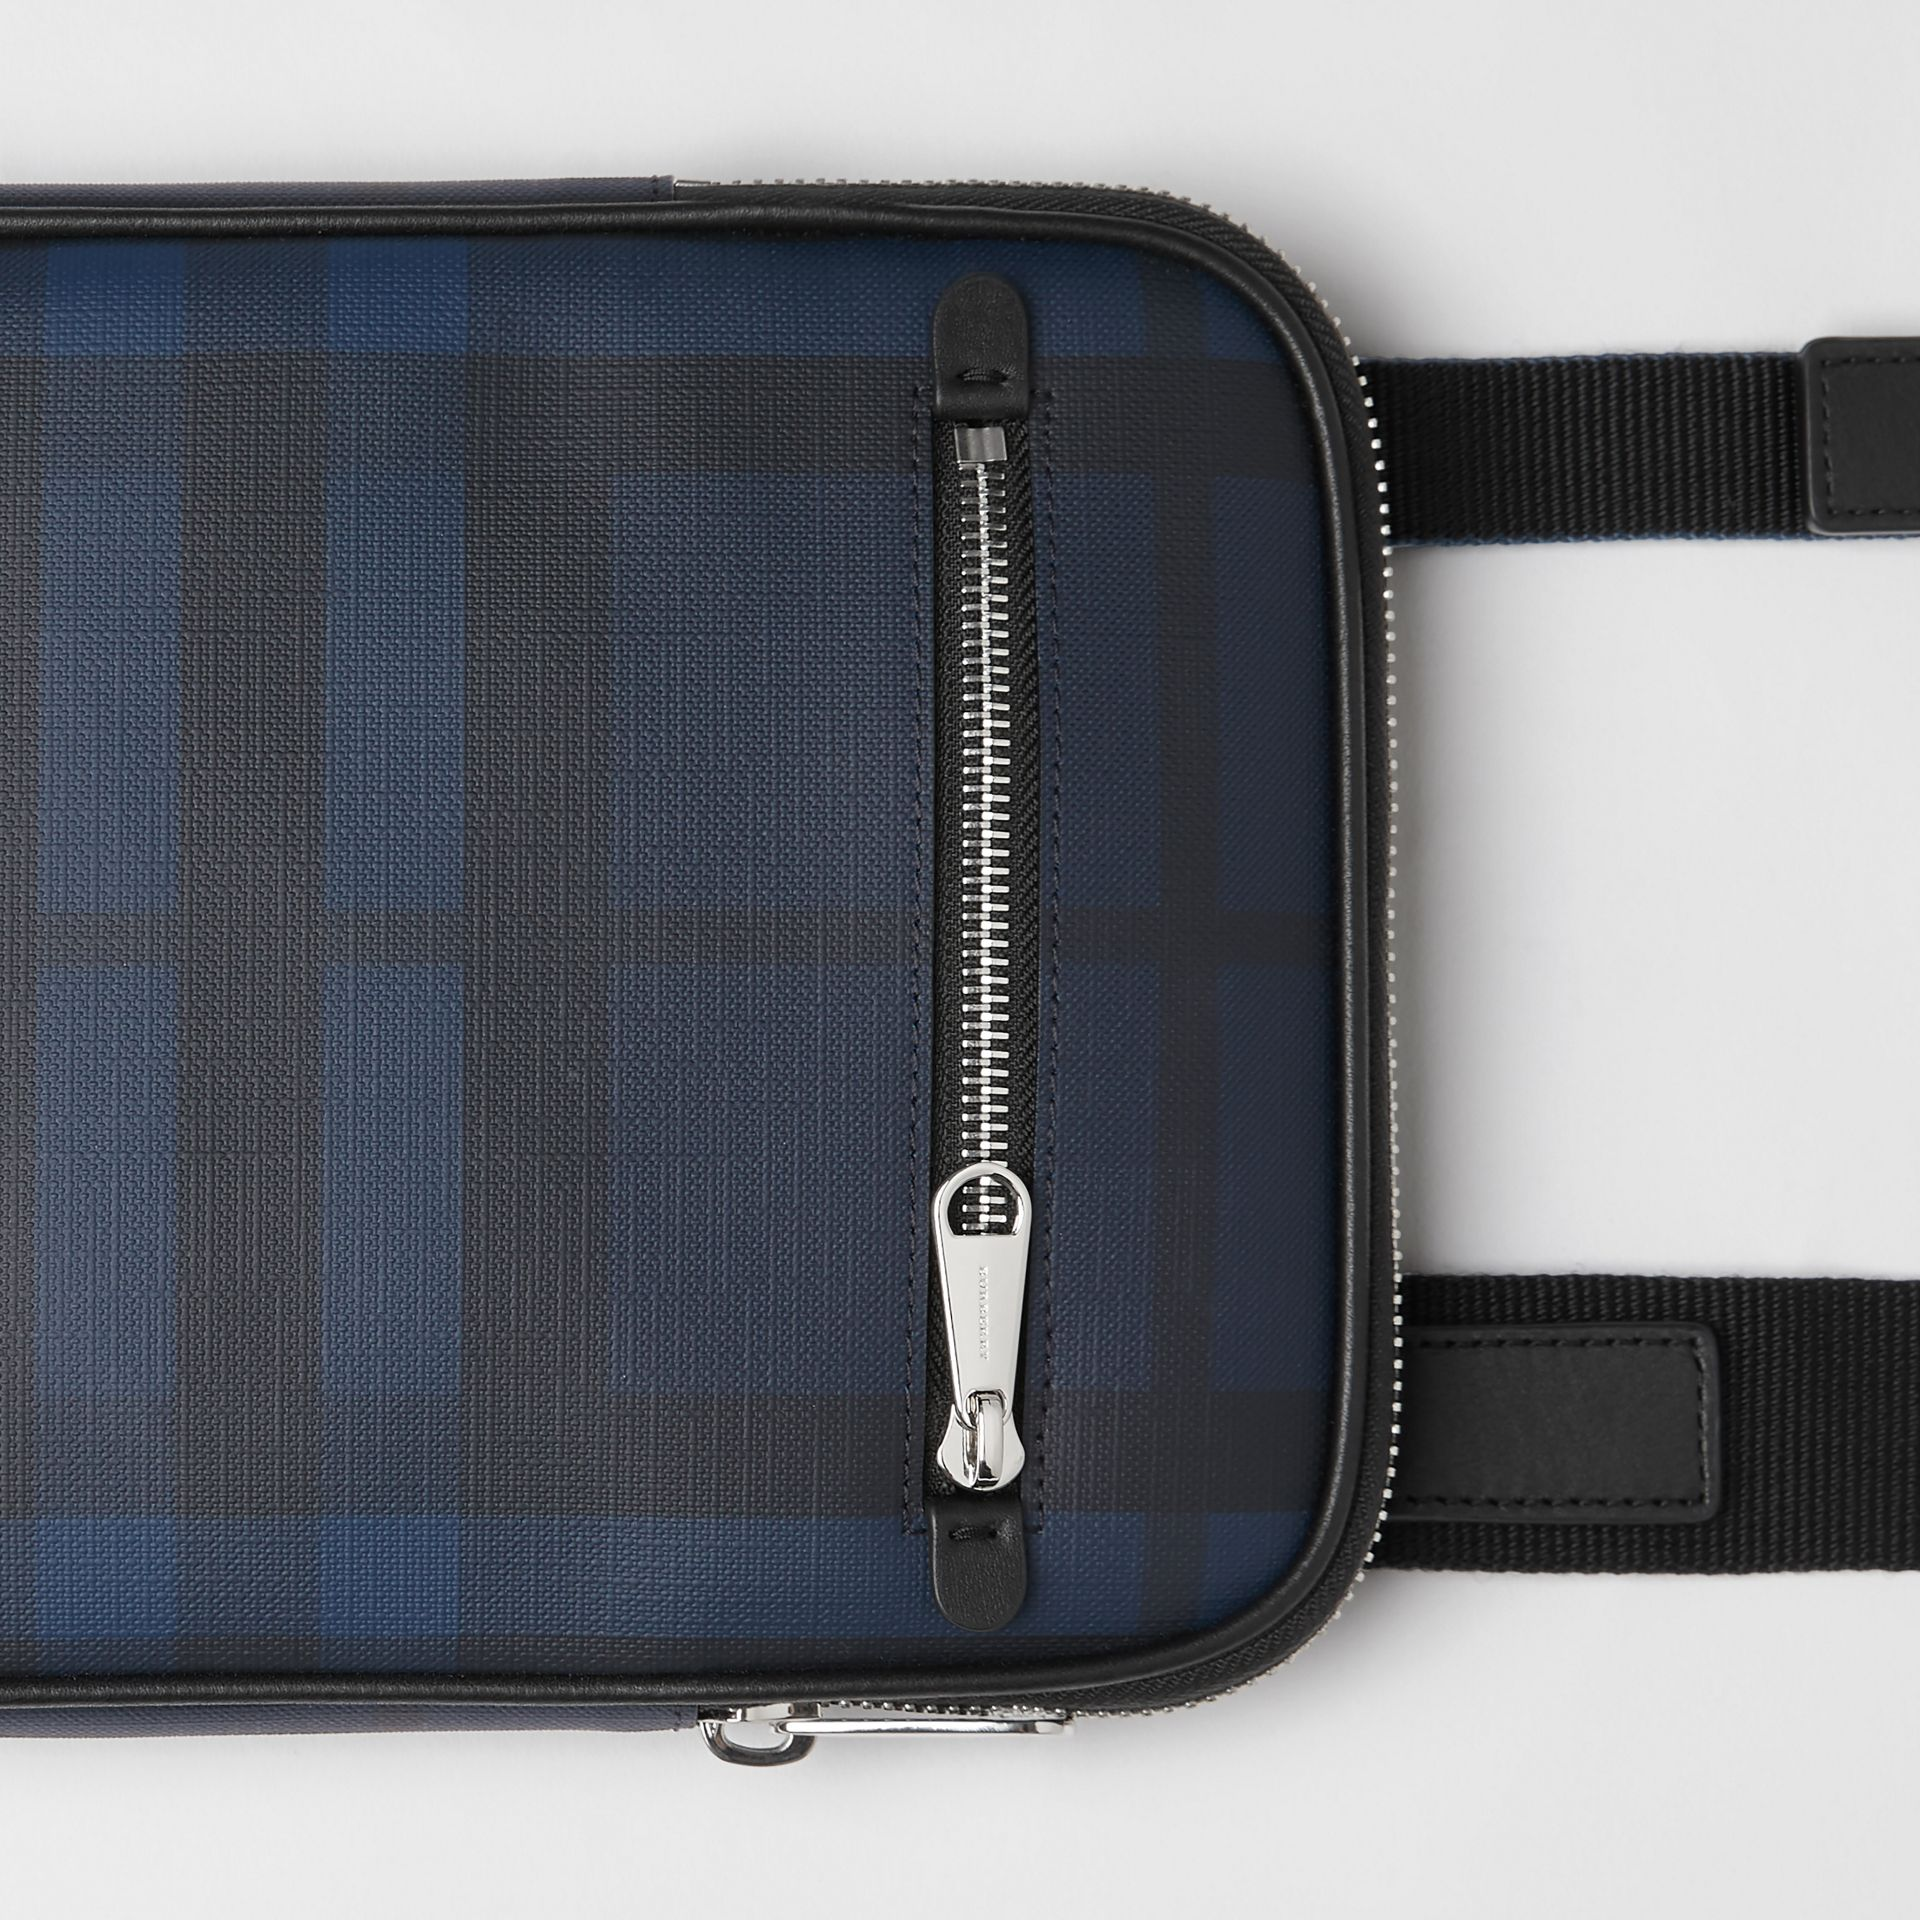 Slim London Check Crossbody Bag in Navy/black - Men | Burberry United Kingdom - gallery image 1